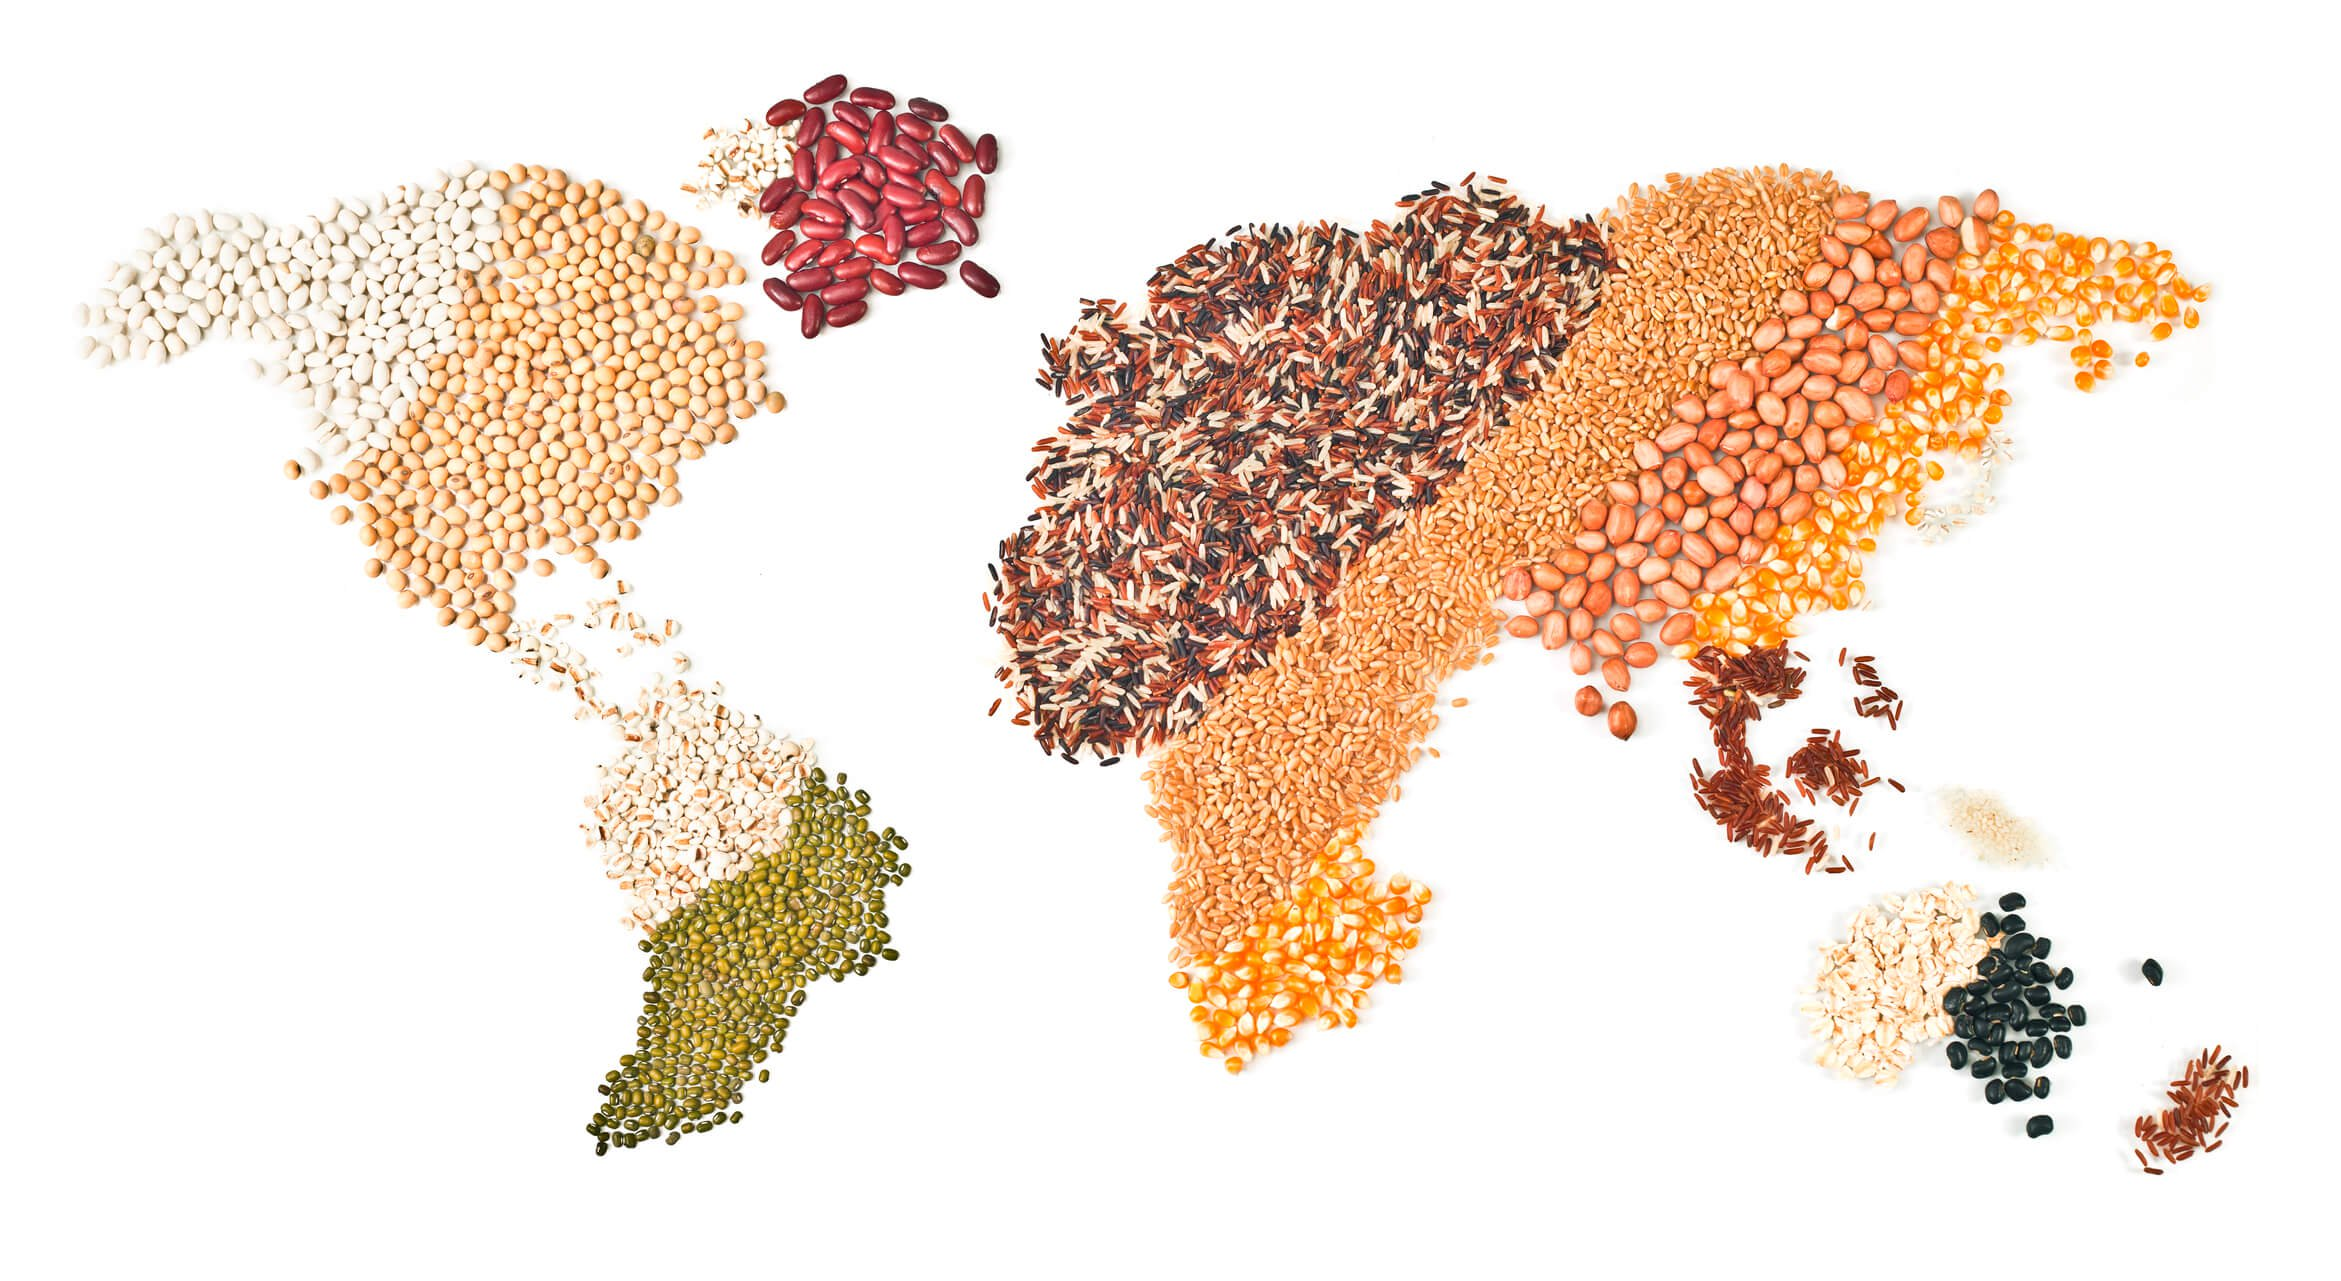 World map made out of grains and legumes